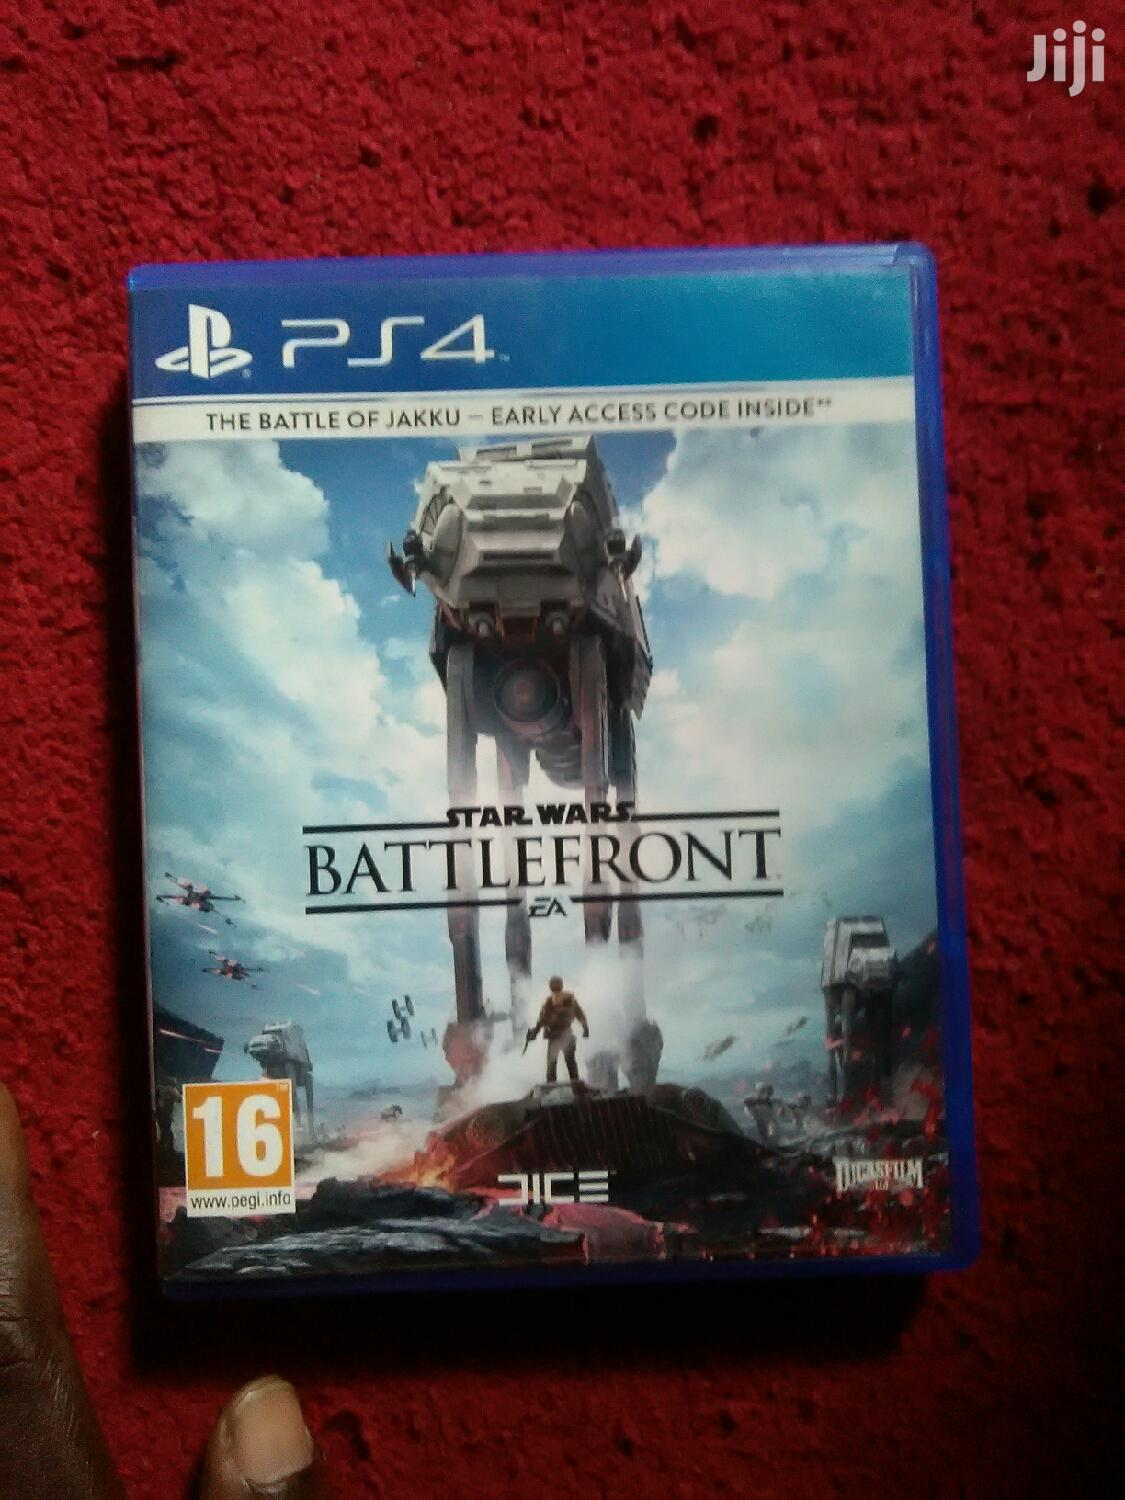 Star Wars Battlefront PS4 Game | Video Games for sale in Kampala, Central Region, Uganda